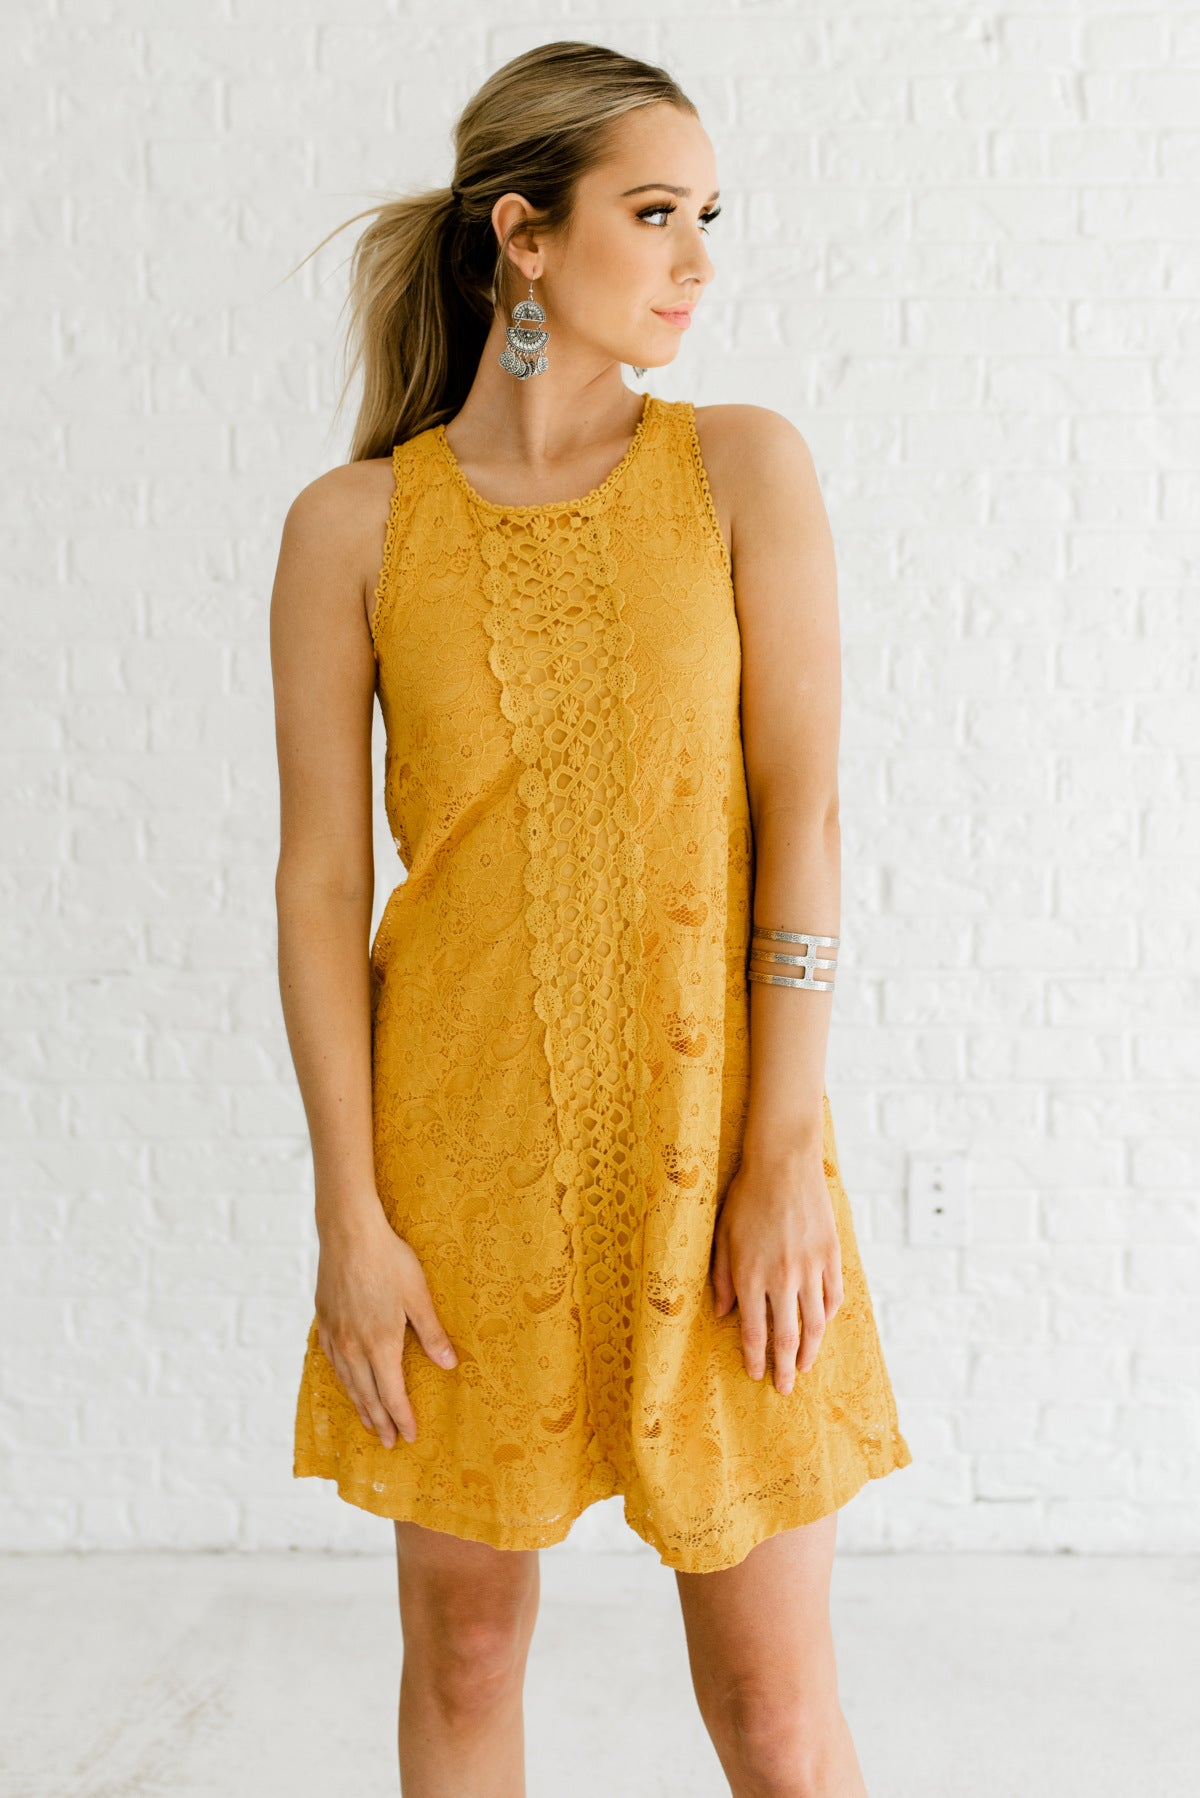 Mustard Yellow Lace Overlay Boutique Mini Dresses for Women